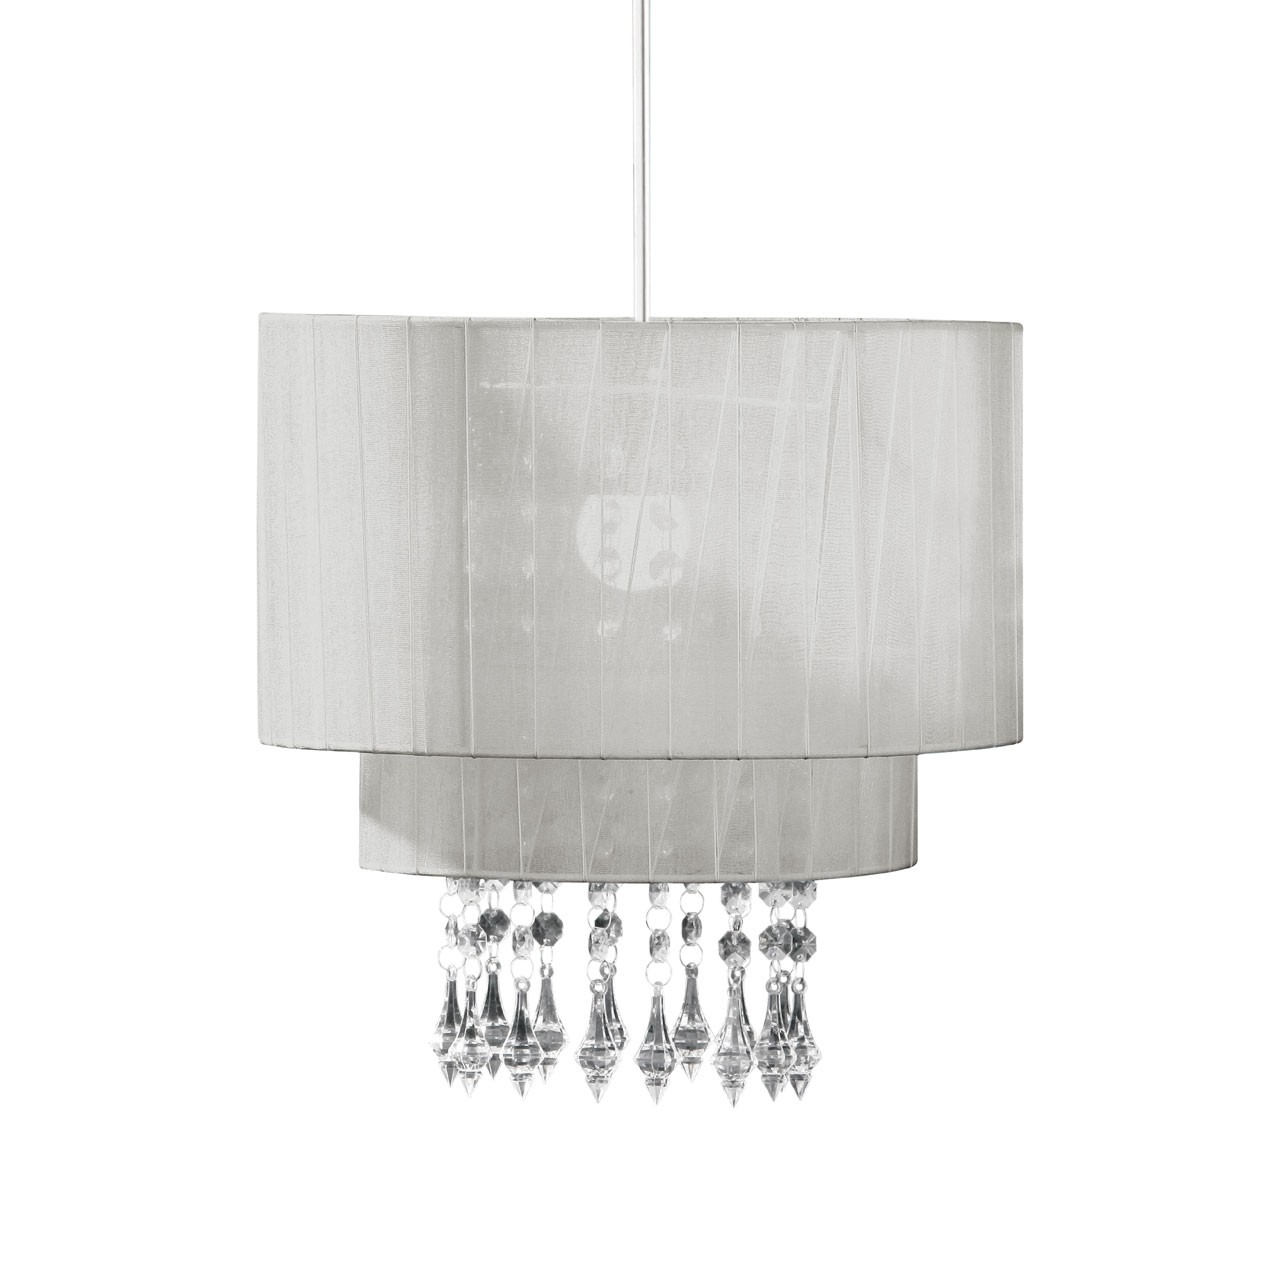 Prime Furnishing Riband Voile Beaded Pendant Shade - Silver